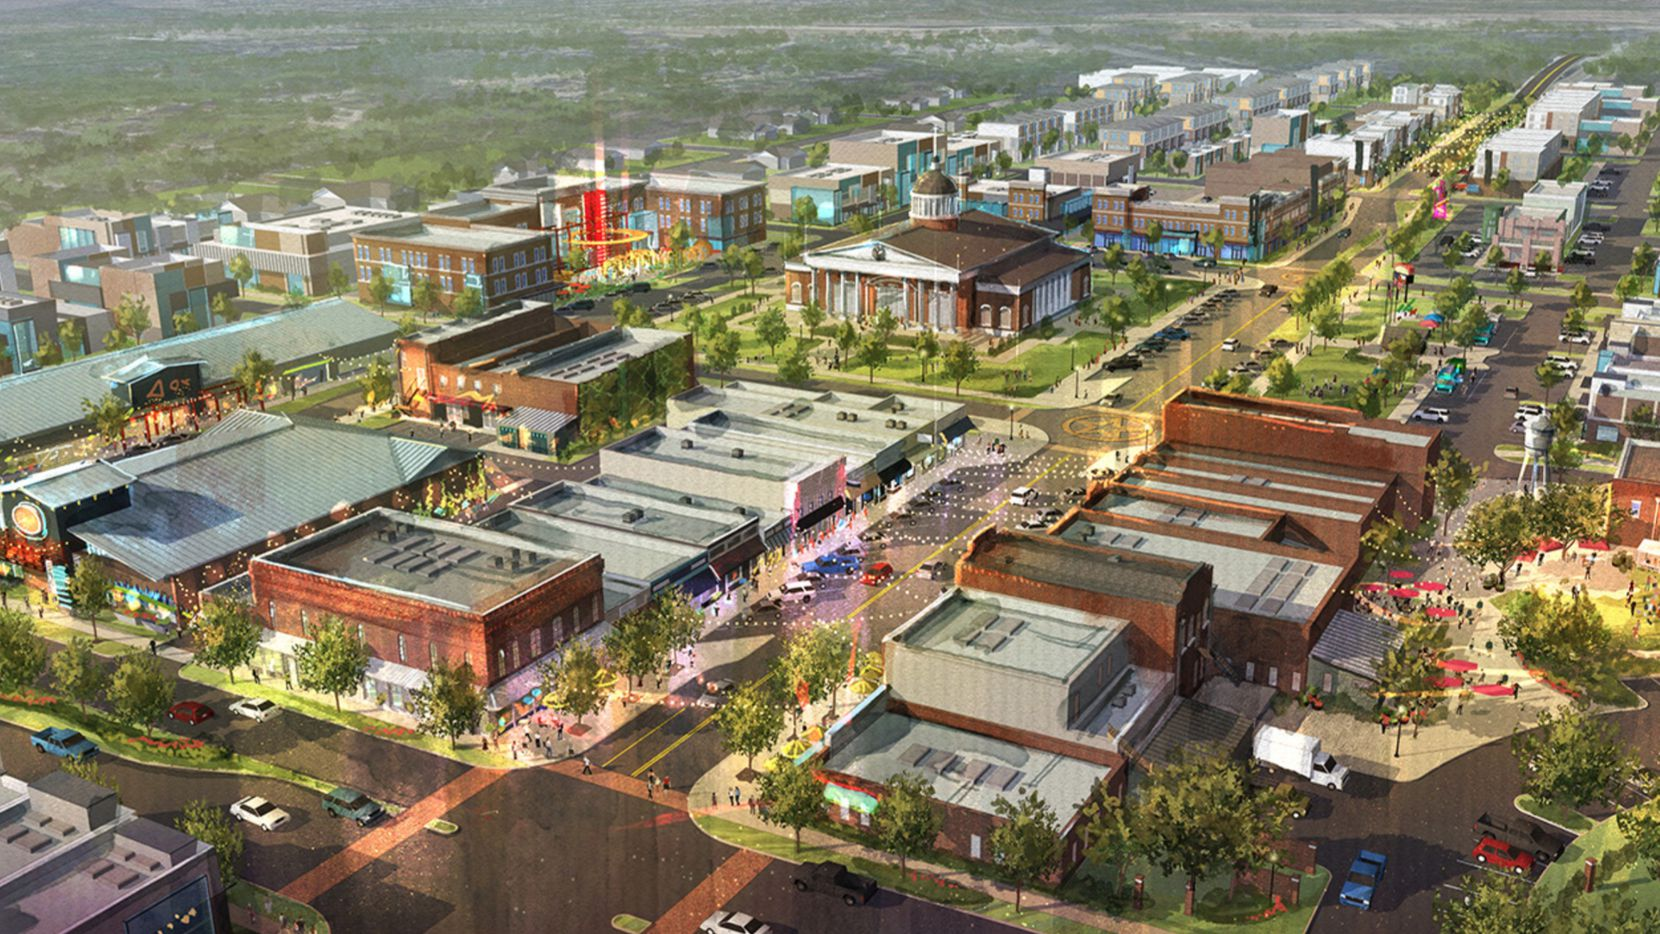 Midlothian has new development and preservation plans for its more than 80-acre downtown areas.